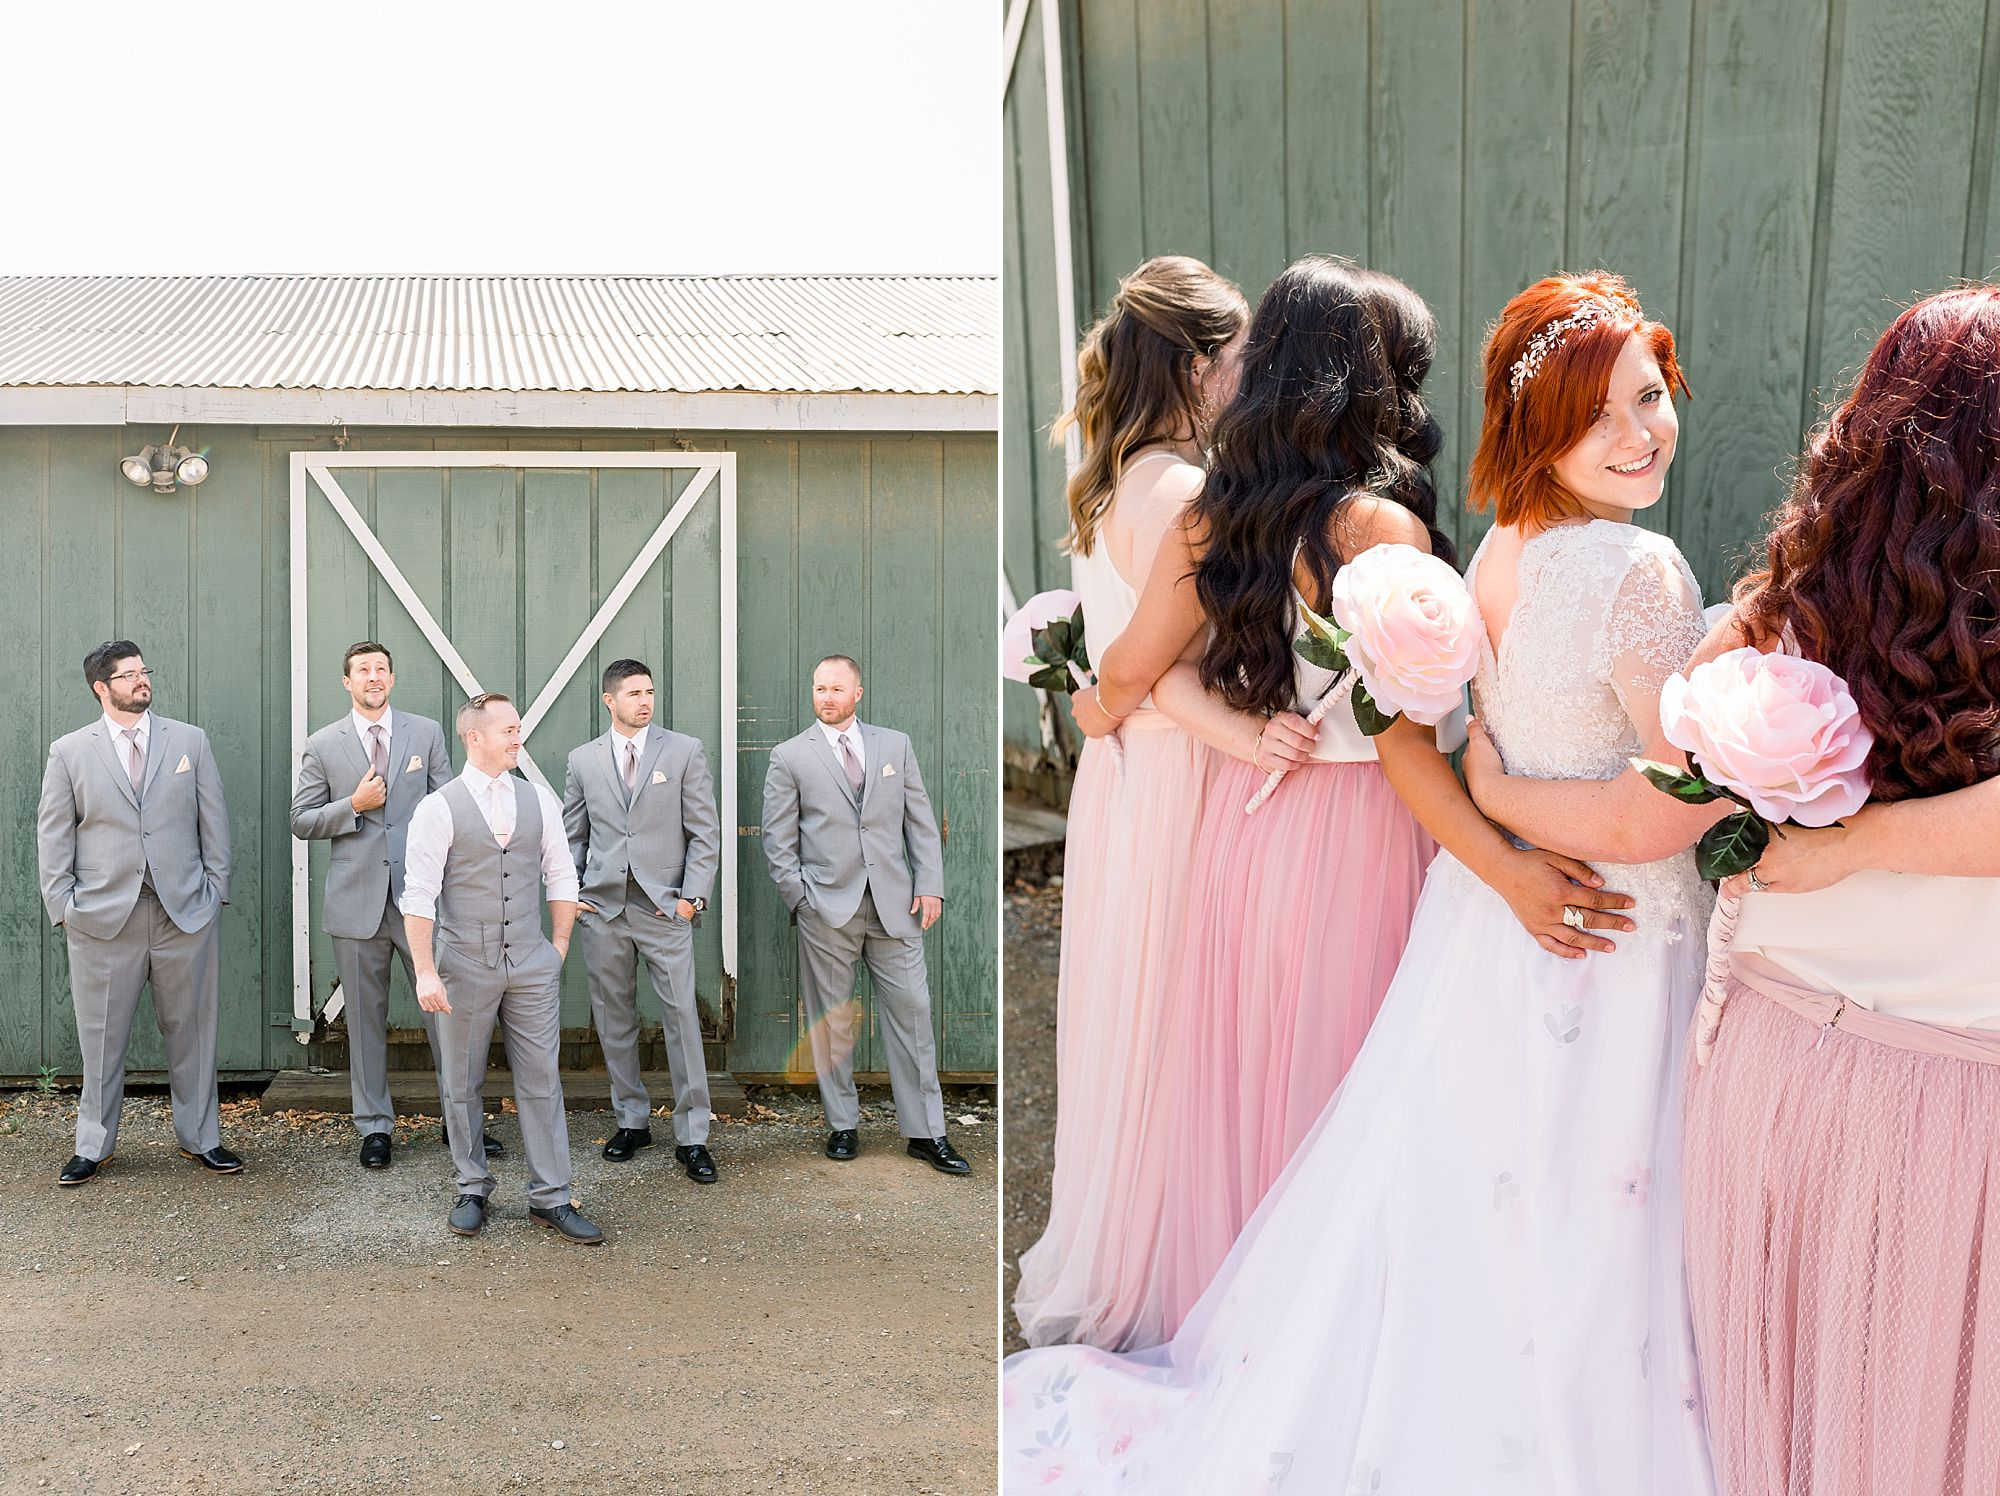 Bishops Pumpkin Farm Wedding - Annie and Logan - Ashley Baumgartner - Wheatland Wedding Photographer_0013.jpg